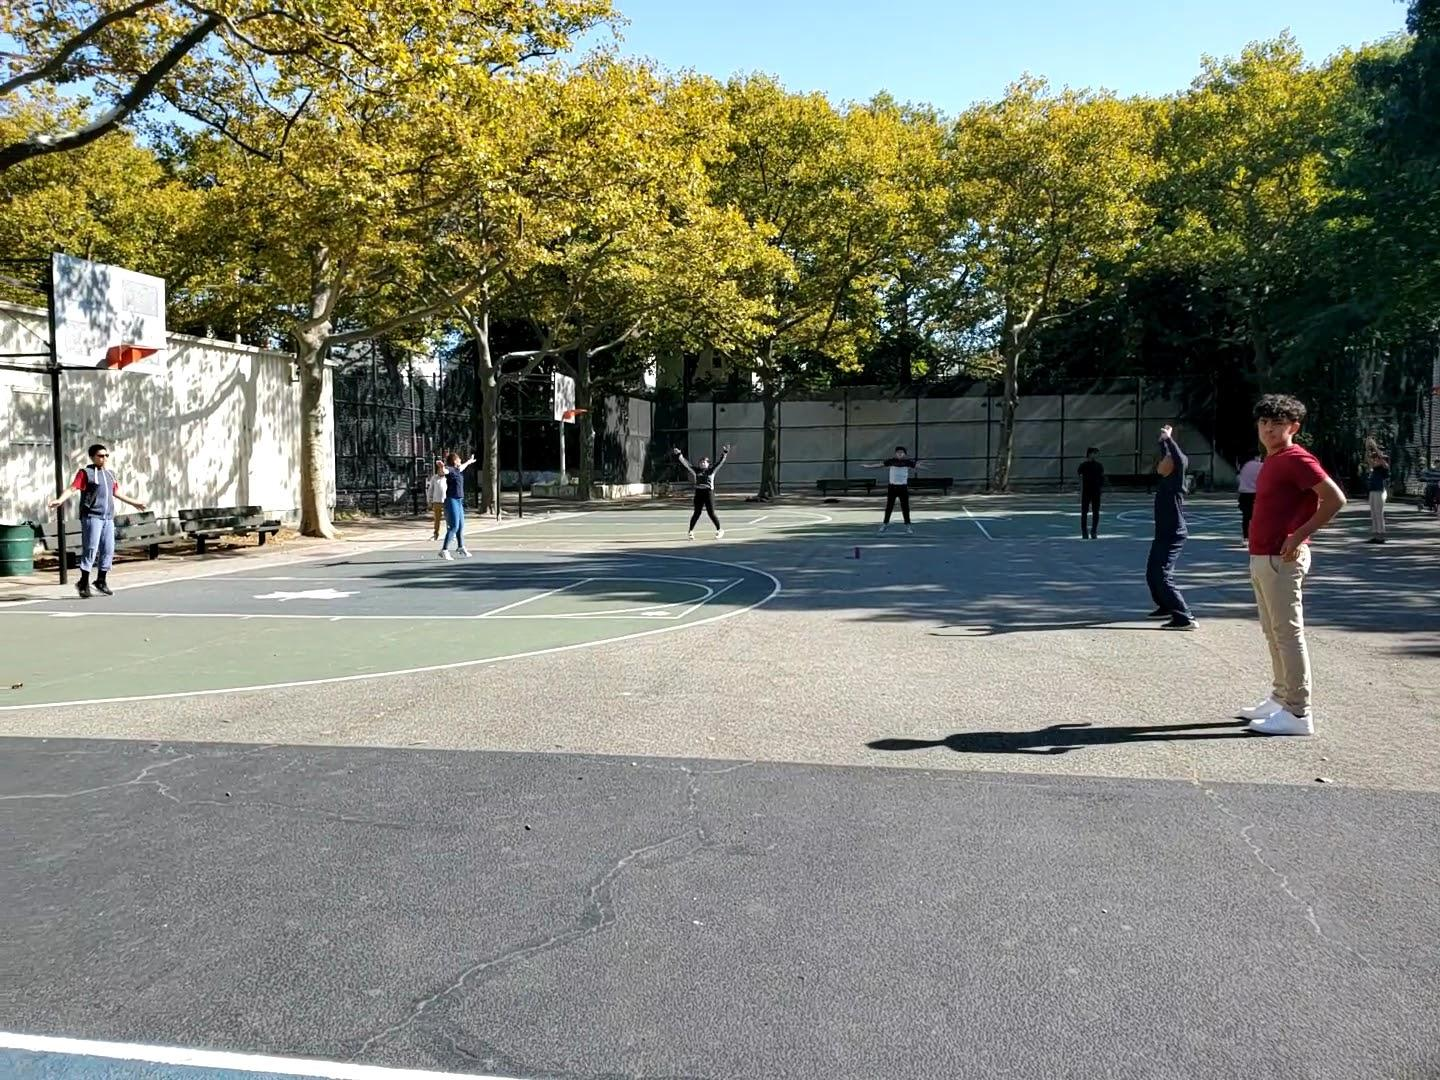 Students exercise on basketball court